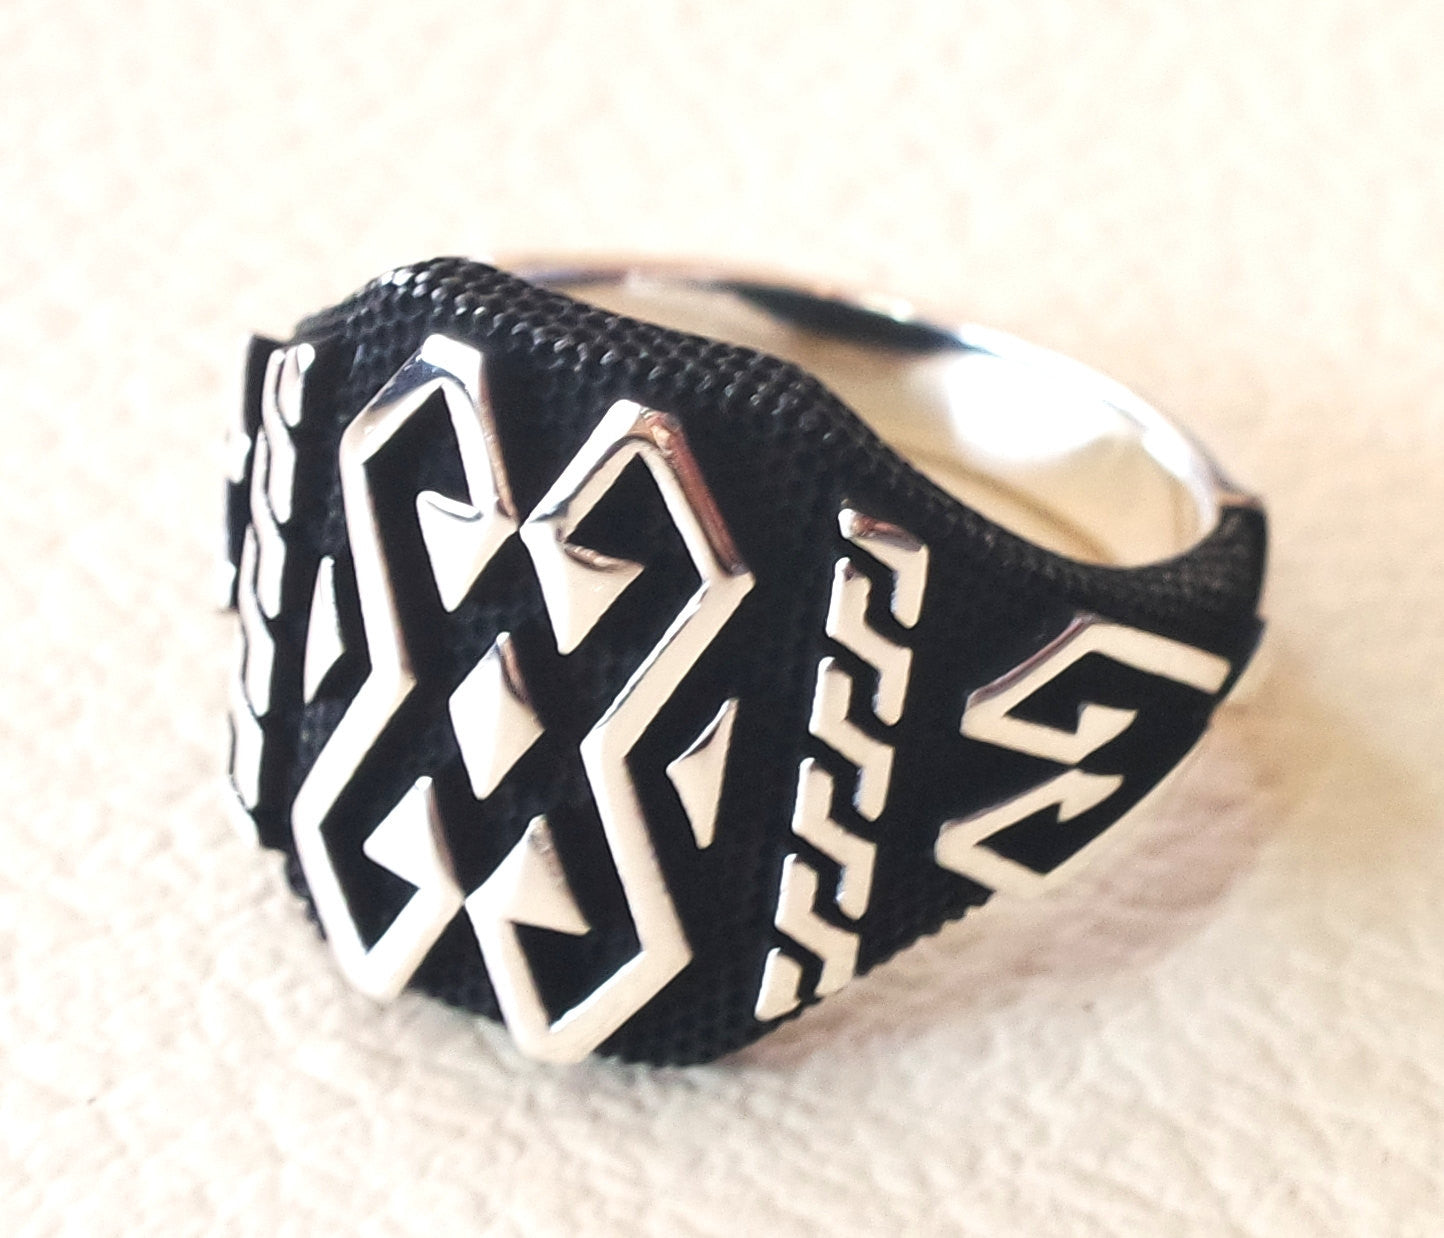 man ring celtic sterling silver 925 heavy rectangular shape any size antique style high quality jewelry